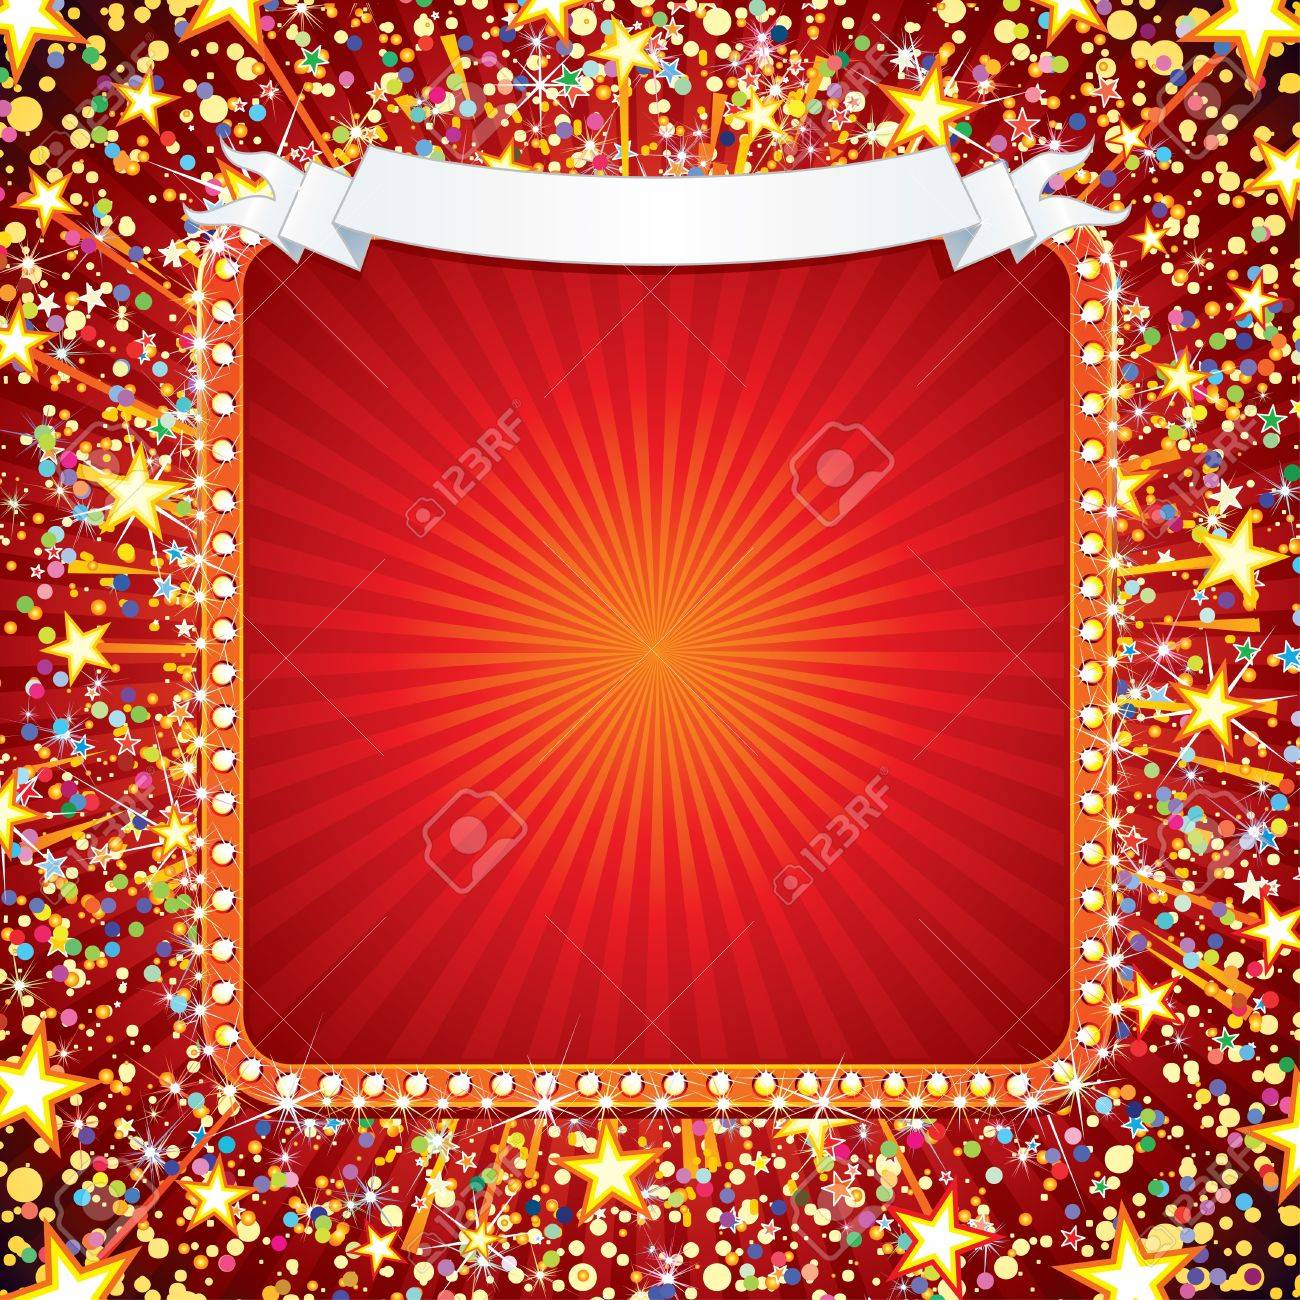 Festive Vector Background with Fireworks, Confetti, Stars and Sparks. Ready for your own text or design Stock Vector - 10301586